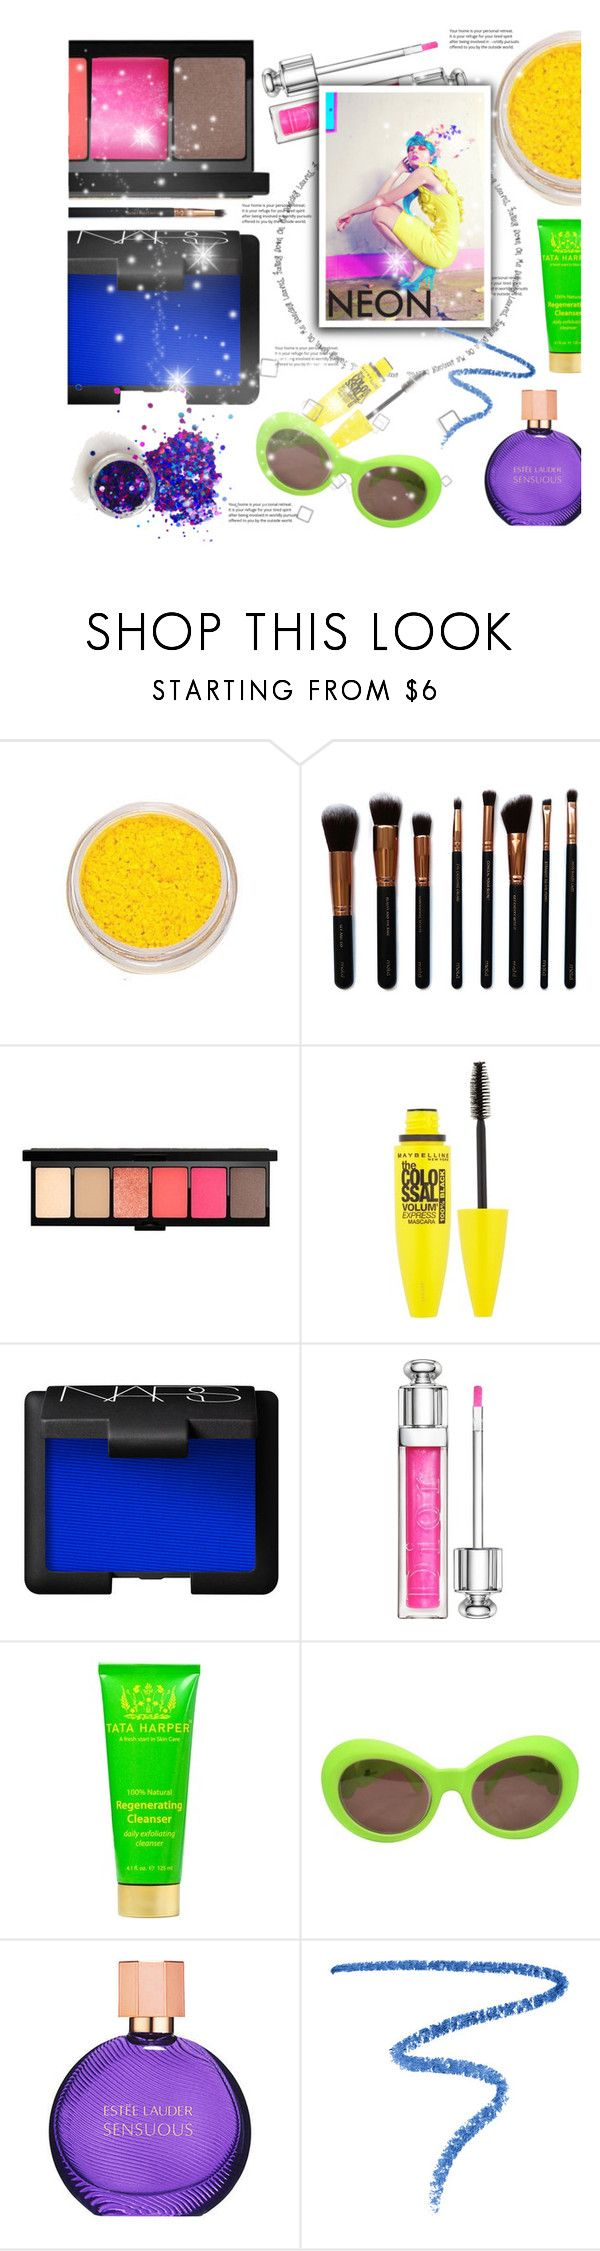 """""""Beauty in Neon"""" by arrow1067 ❤ liked on Polyvore featuring beauty, M.O.T.D Cosmetics, Maybelline, Outremer, Christian Dior, Tata Harper, Versace, Estée Lauder, Marc Jacobs and neonbeauty"""